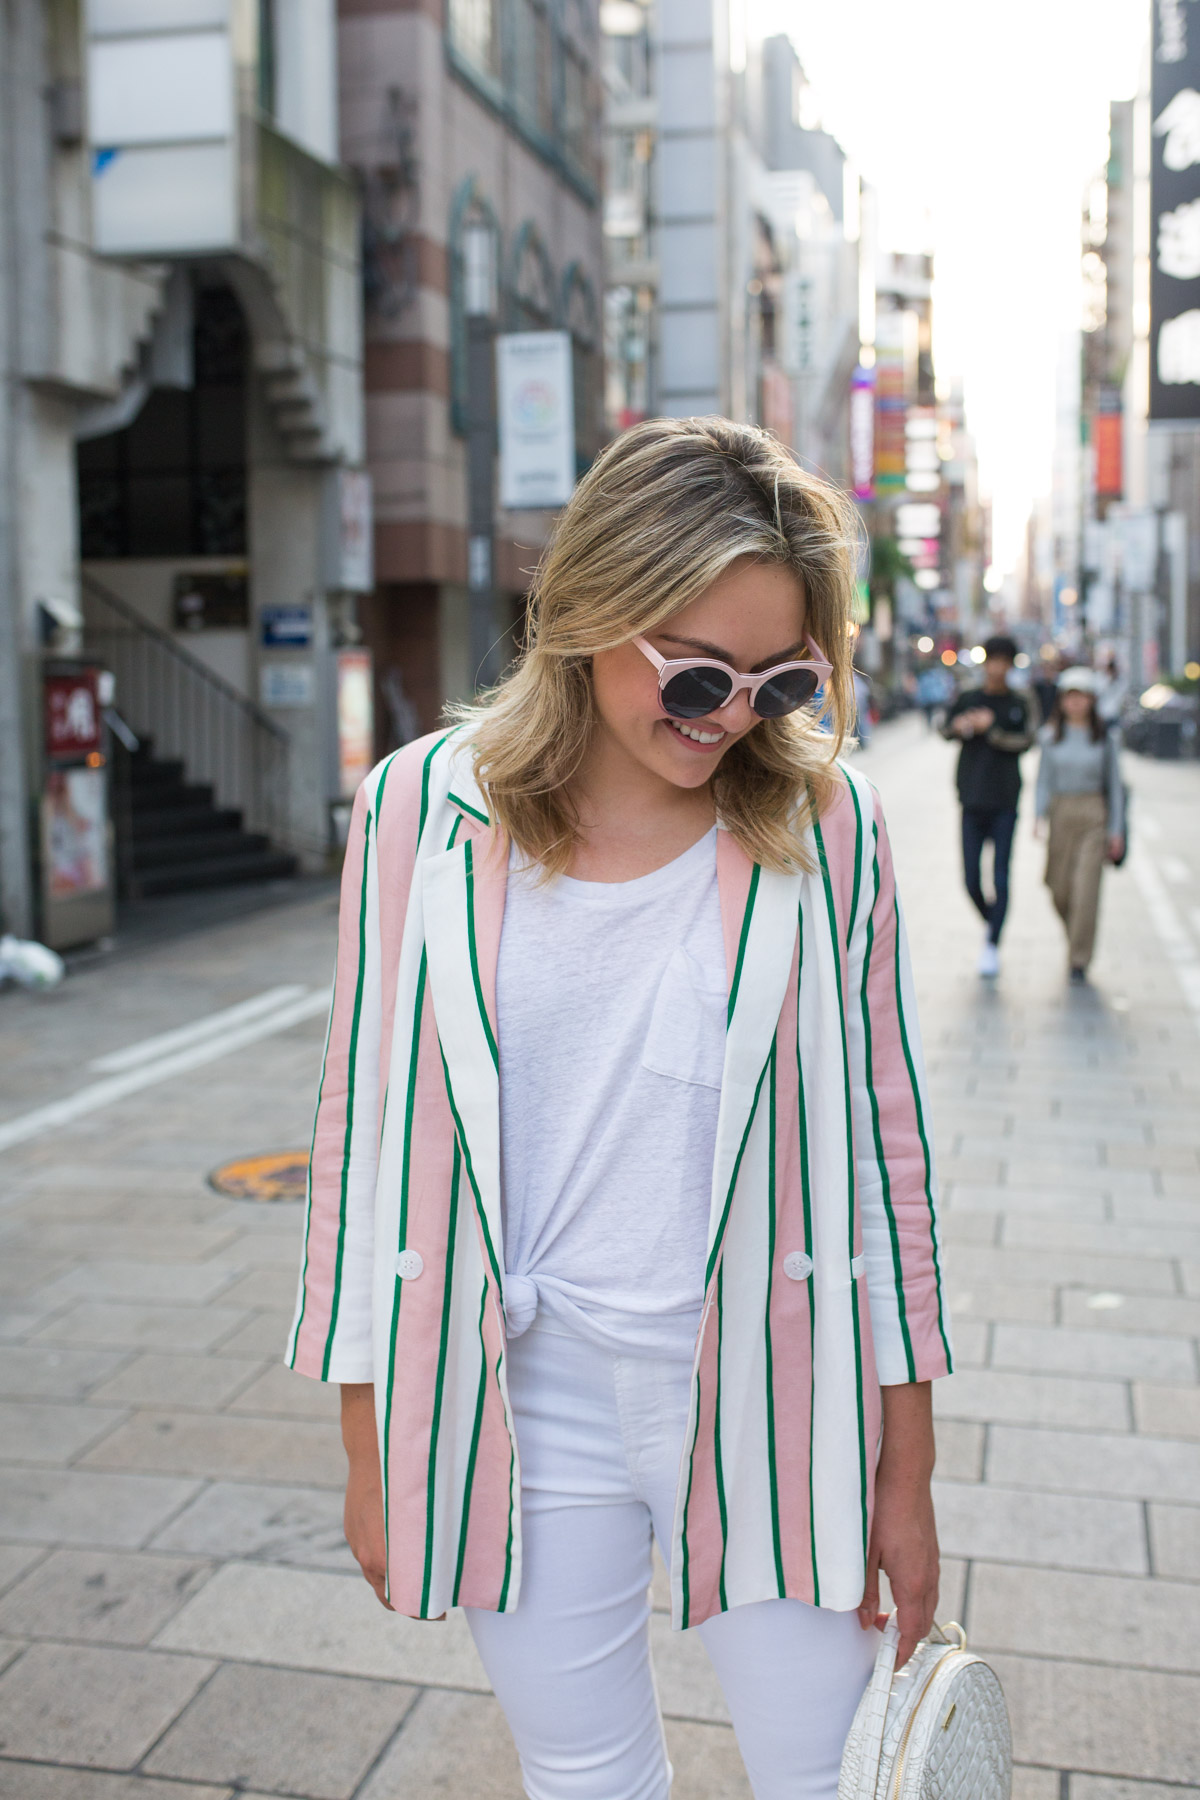 Travel Blogger Jessica Sturdy styling a pink and white oversized blazer with a knotted white tee and white jeans.